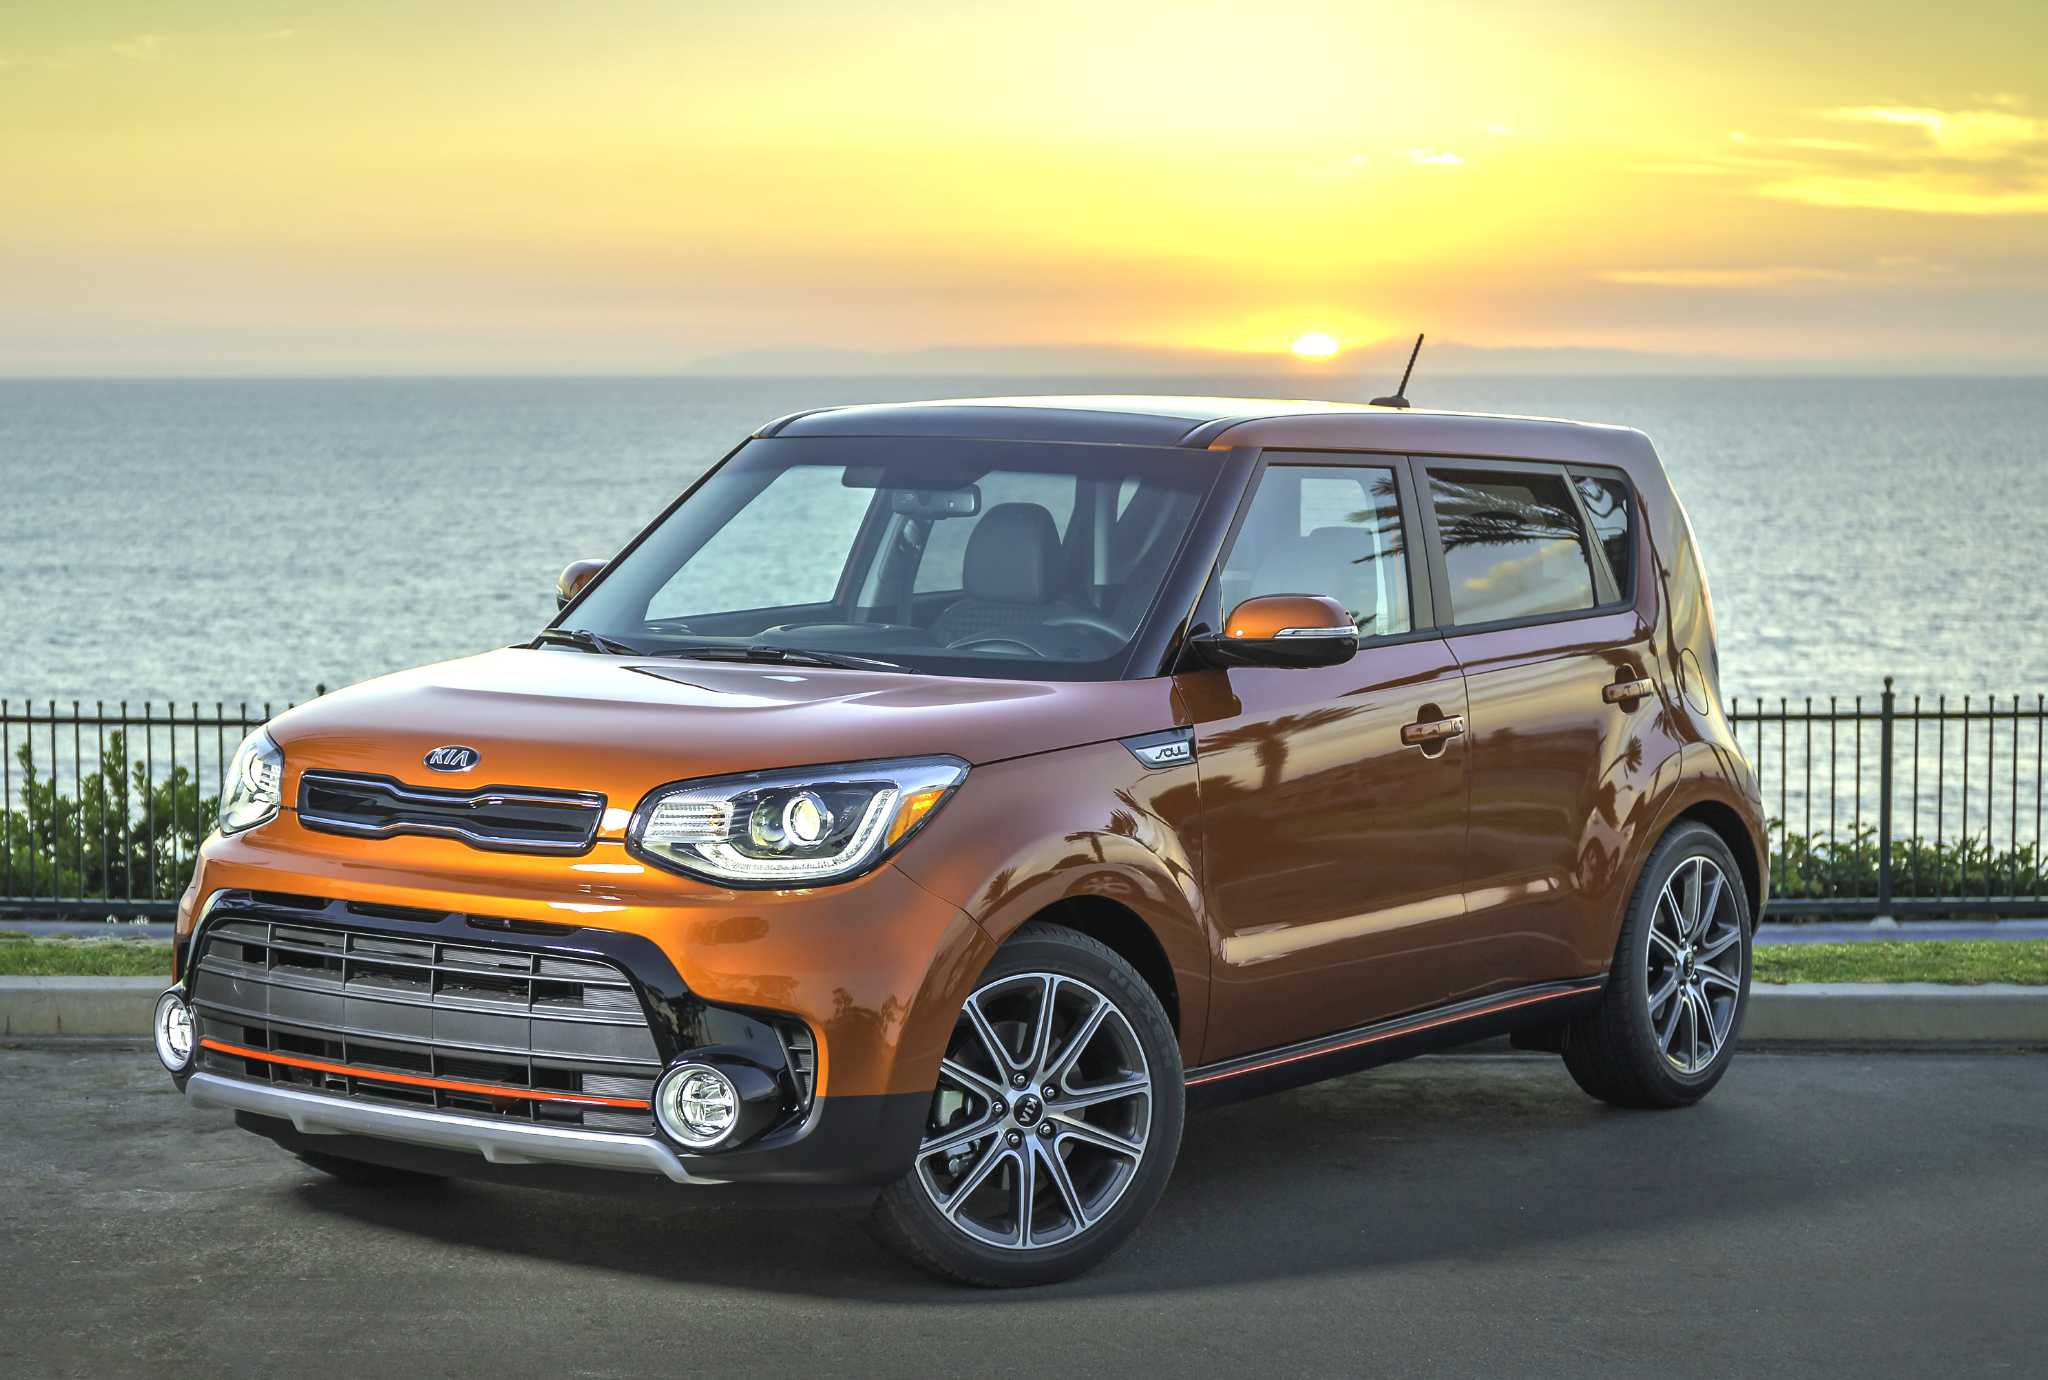 Kia Soul: Funky subcompact crossover now offered with sporty turbo engine